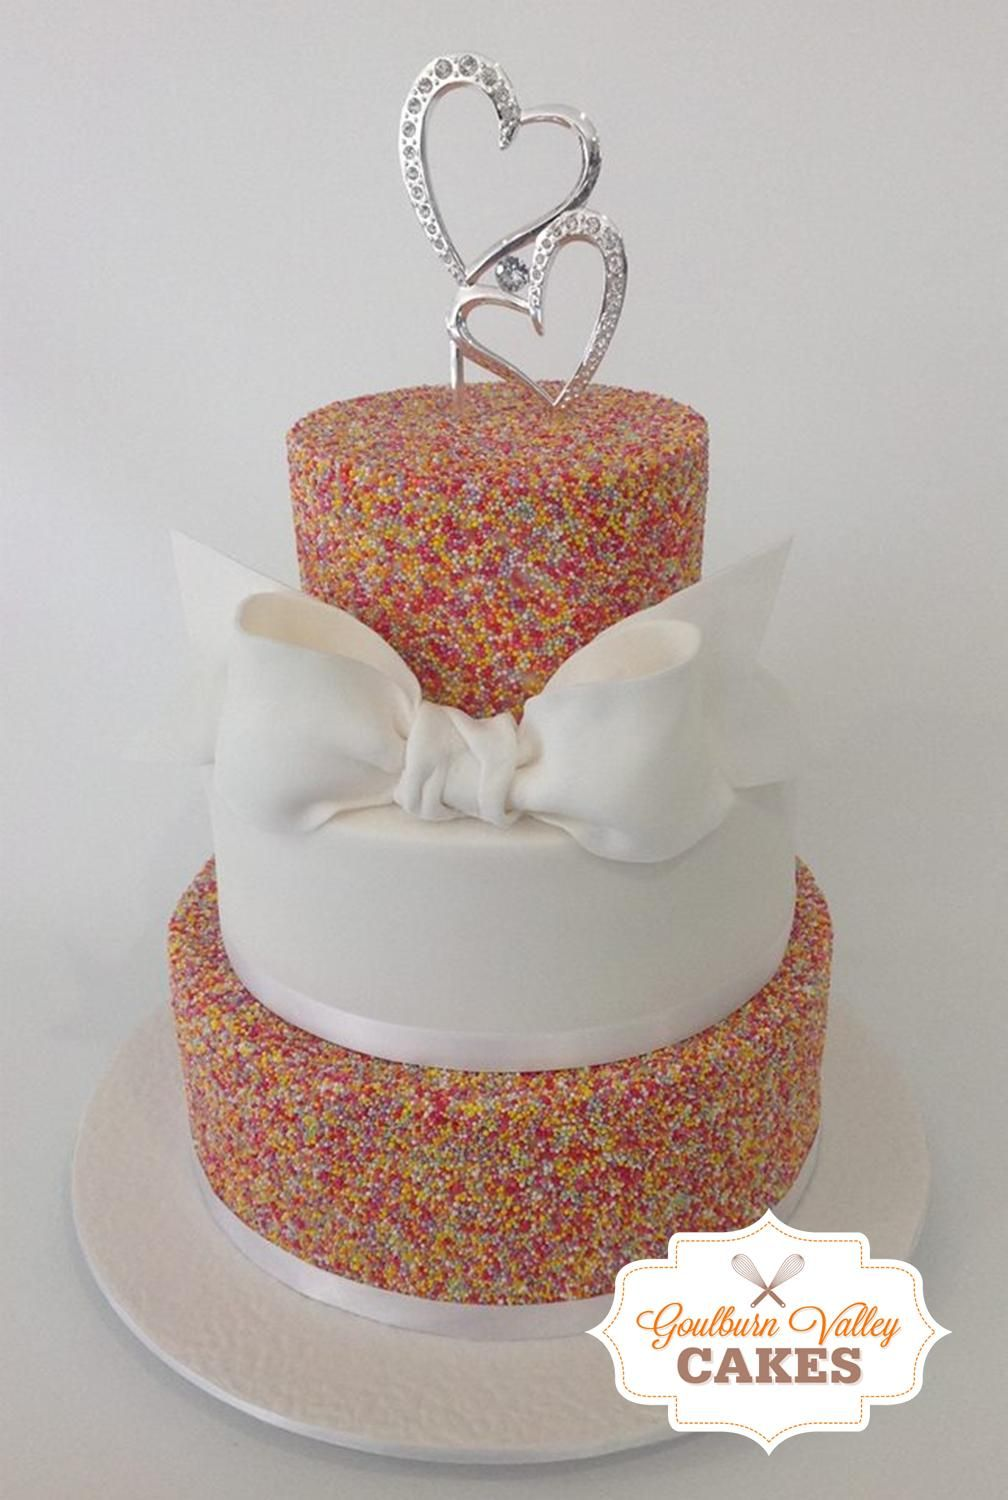 3 Tier Fondant Sprinkles Wedding Cake With Hand Made Bow